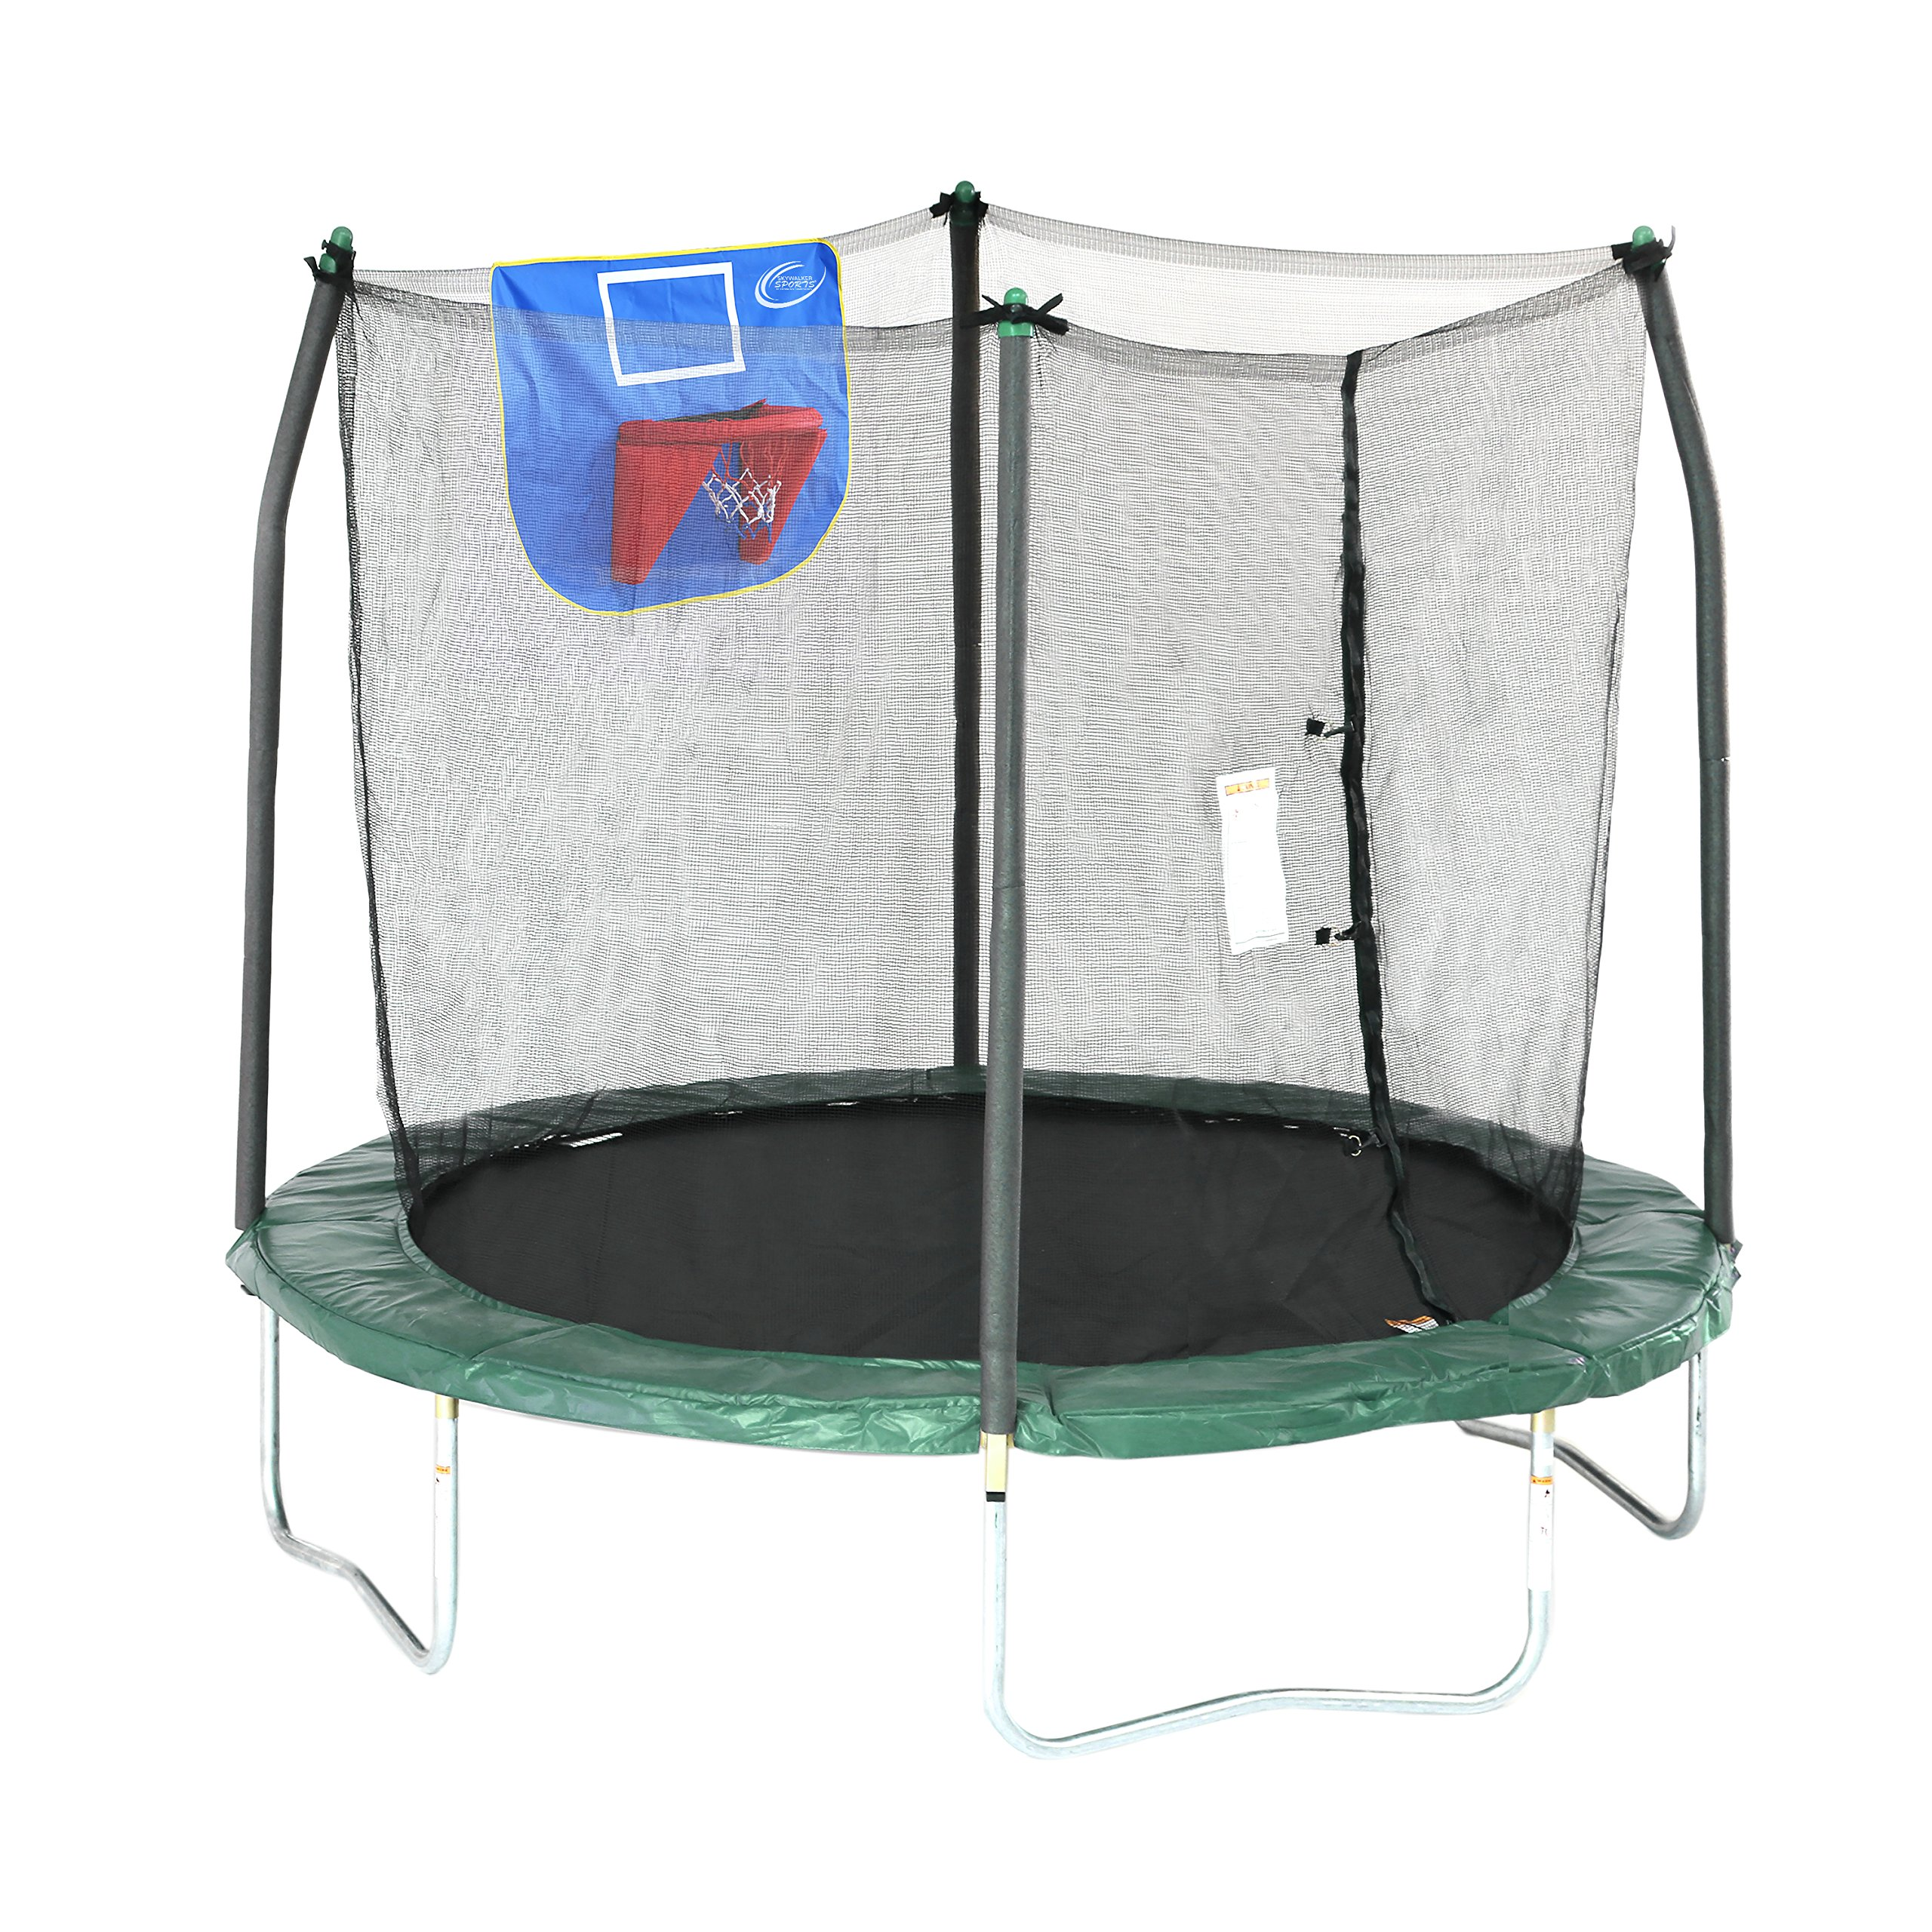 Skywalker Trampolines Jump N' Dunk Trampoline with Safety Enclosure and Basketball Hoop, Green, 8-Feet by Skywalker Trampolines